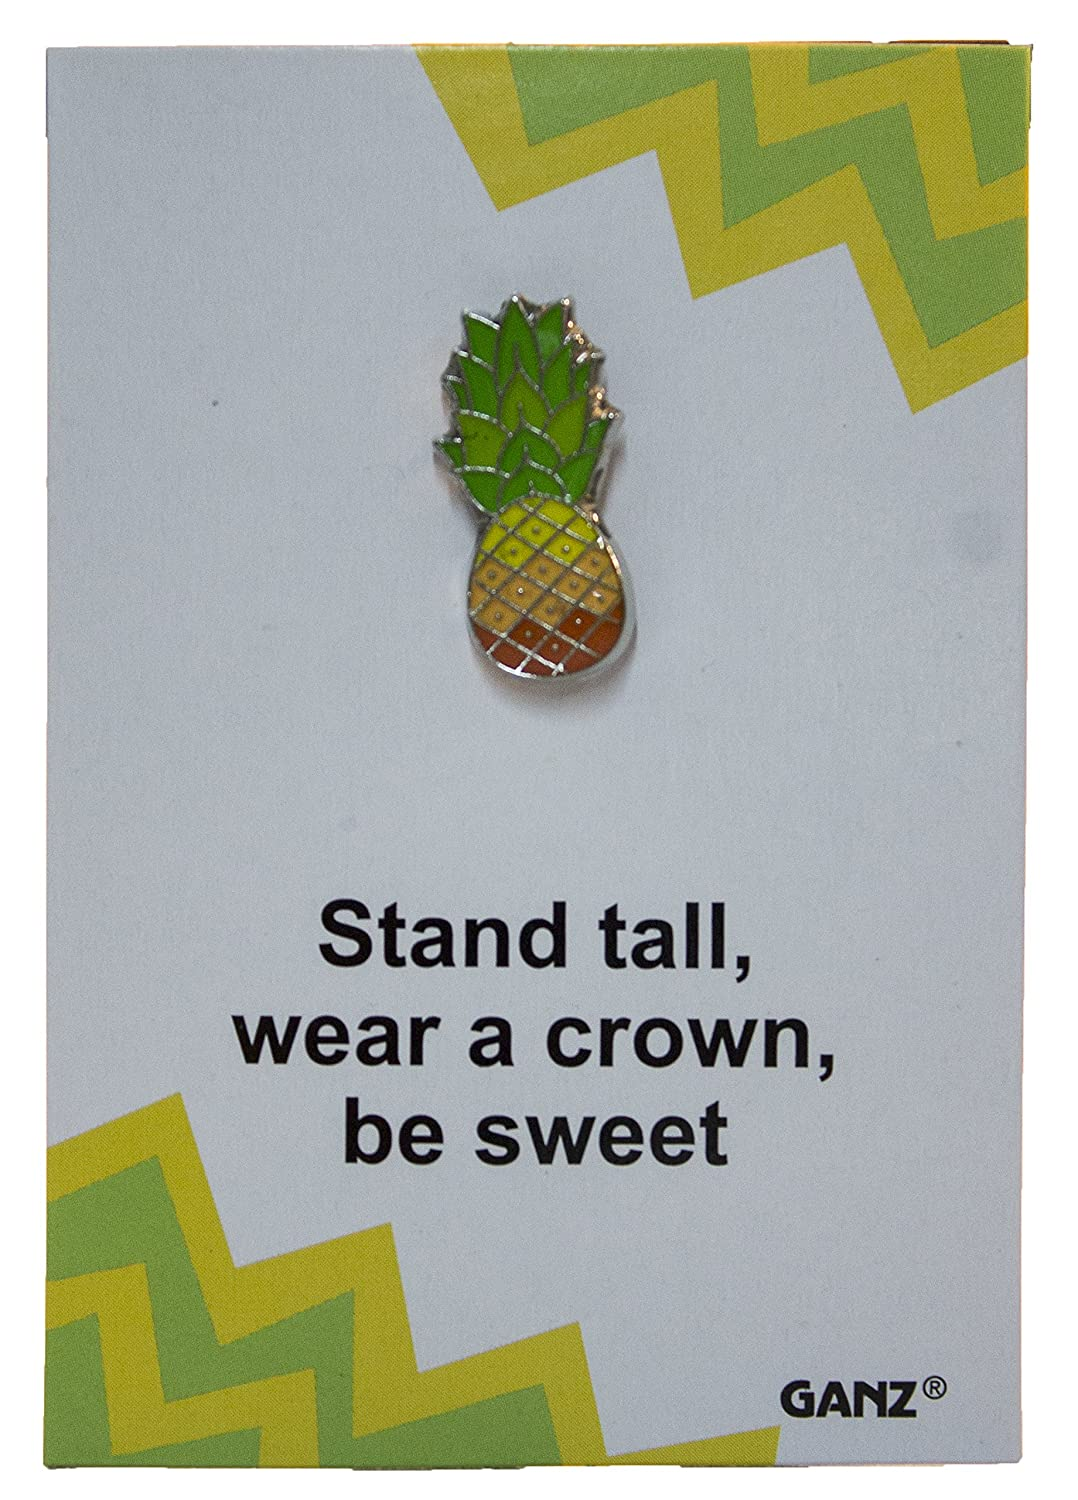 Lapel Pin Hat Pin Tie Tack with Colorful Enamel and Funny Pun Pin It Pineapple